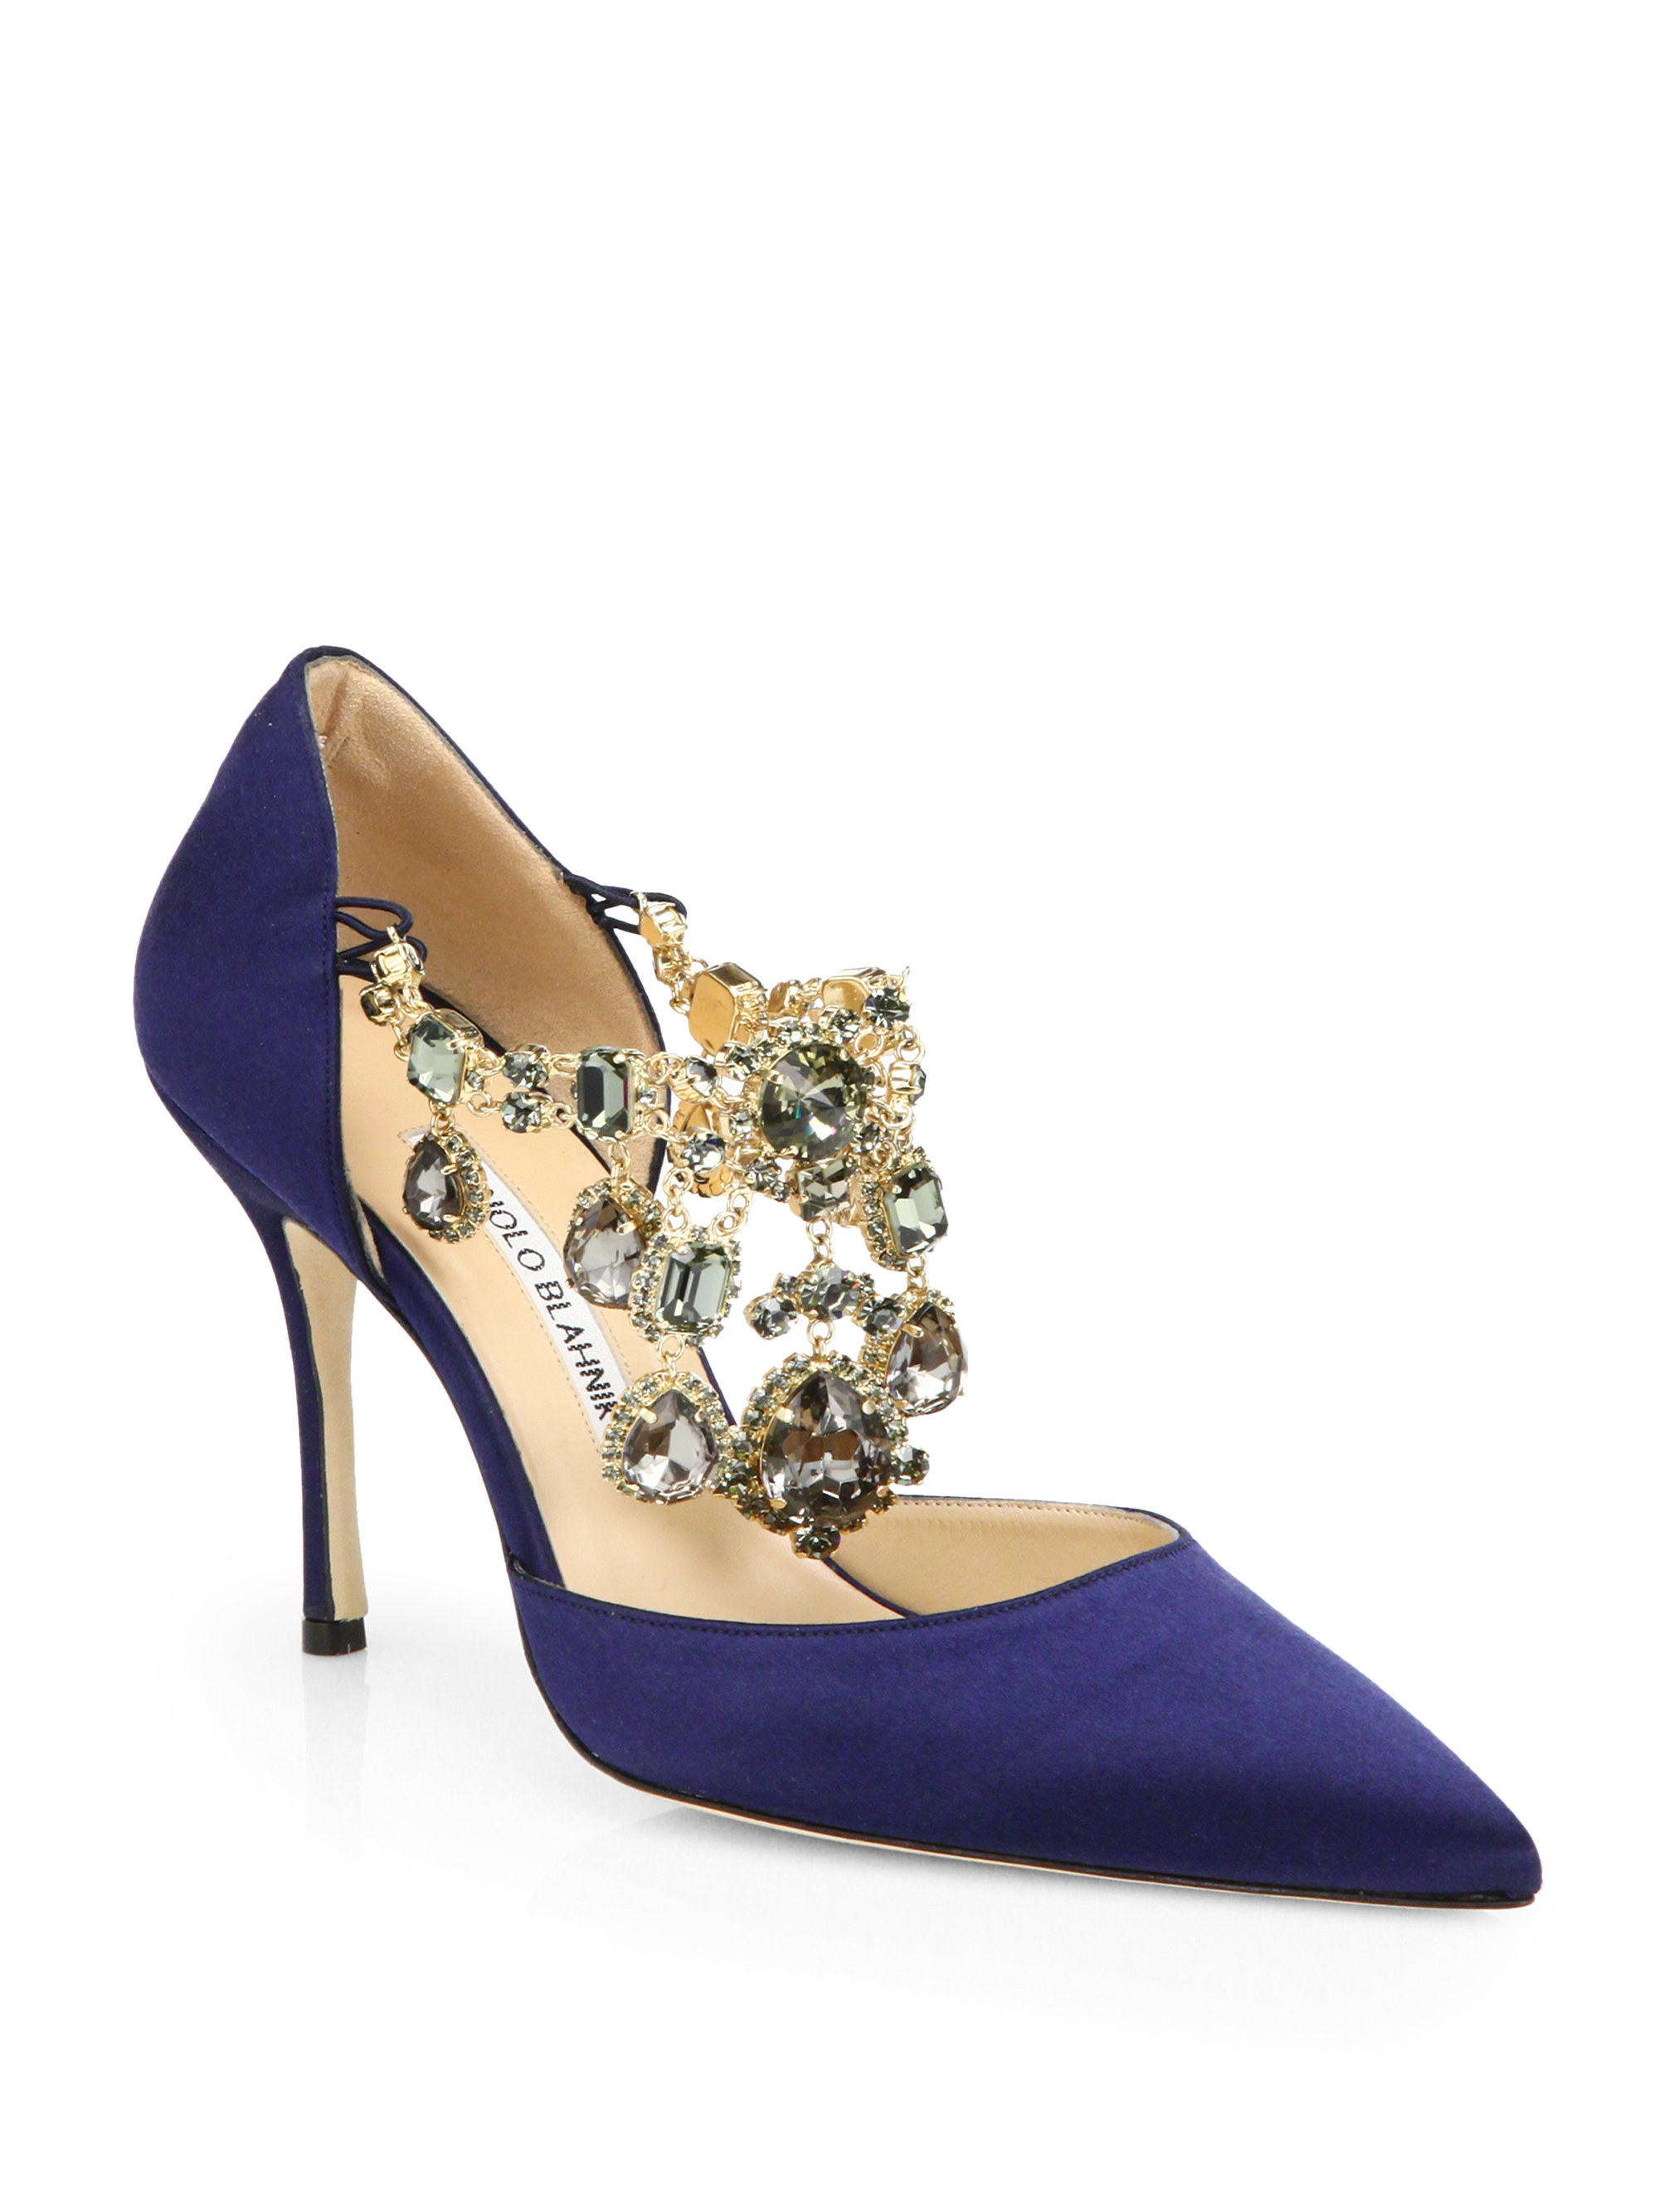 Lyst manolo blahnik zullin satin jeweled d 39 orsay pumps for Who is manolo blahnik